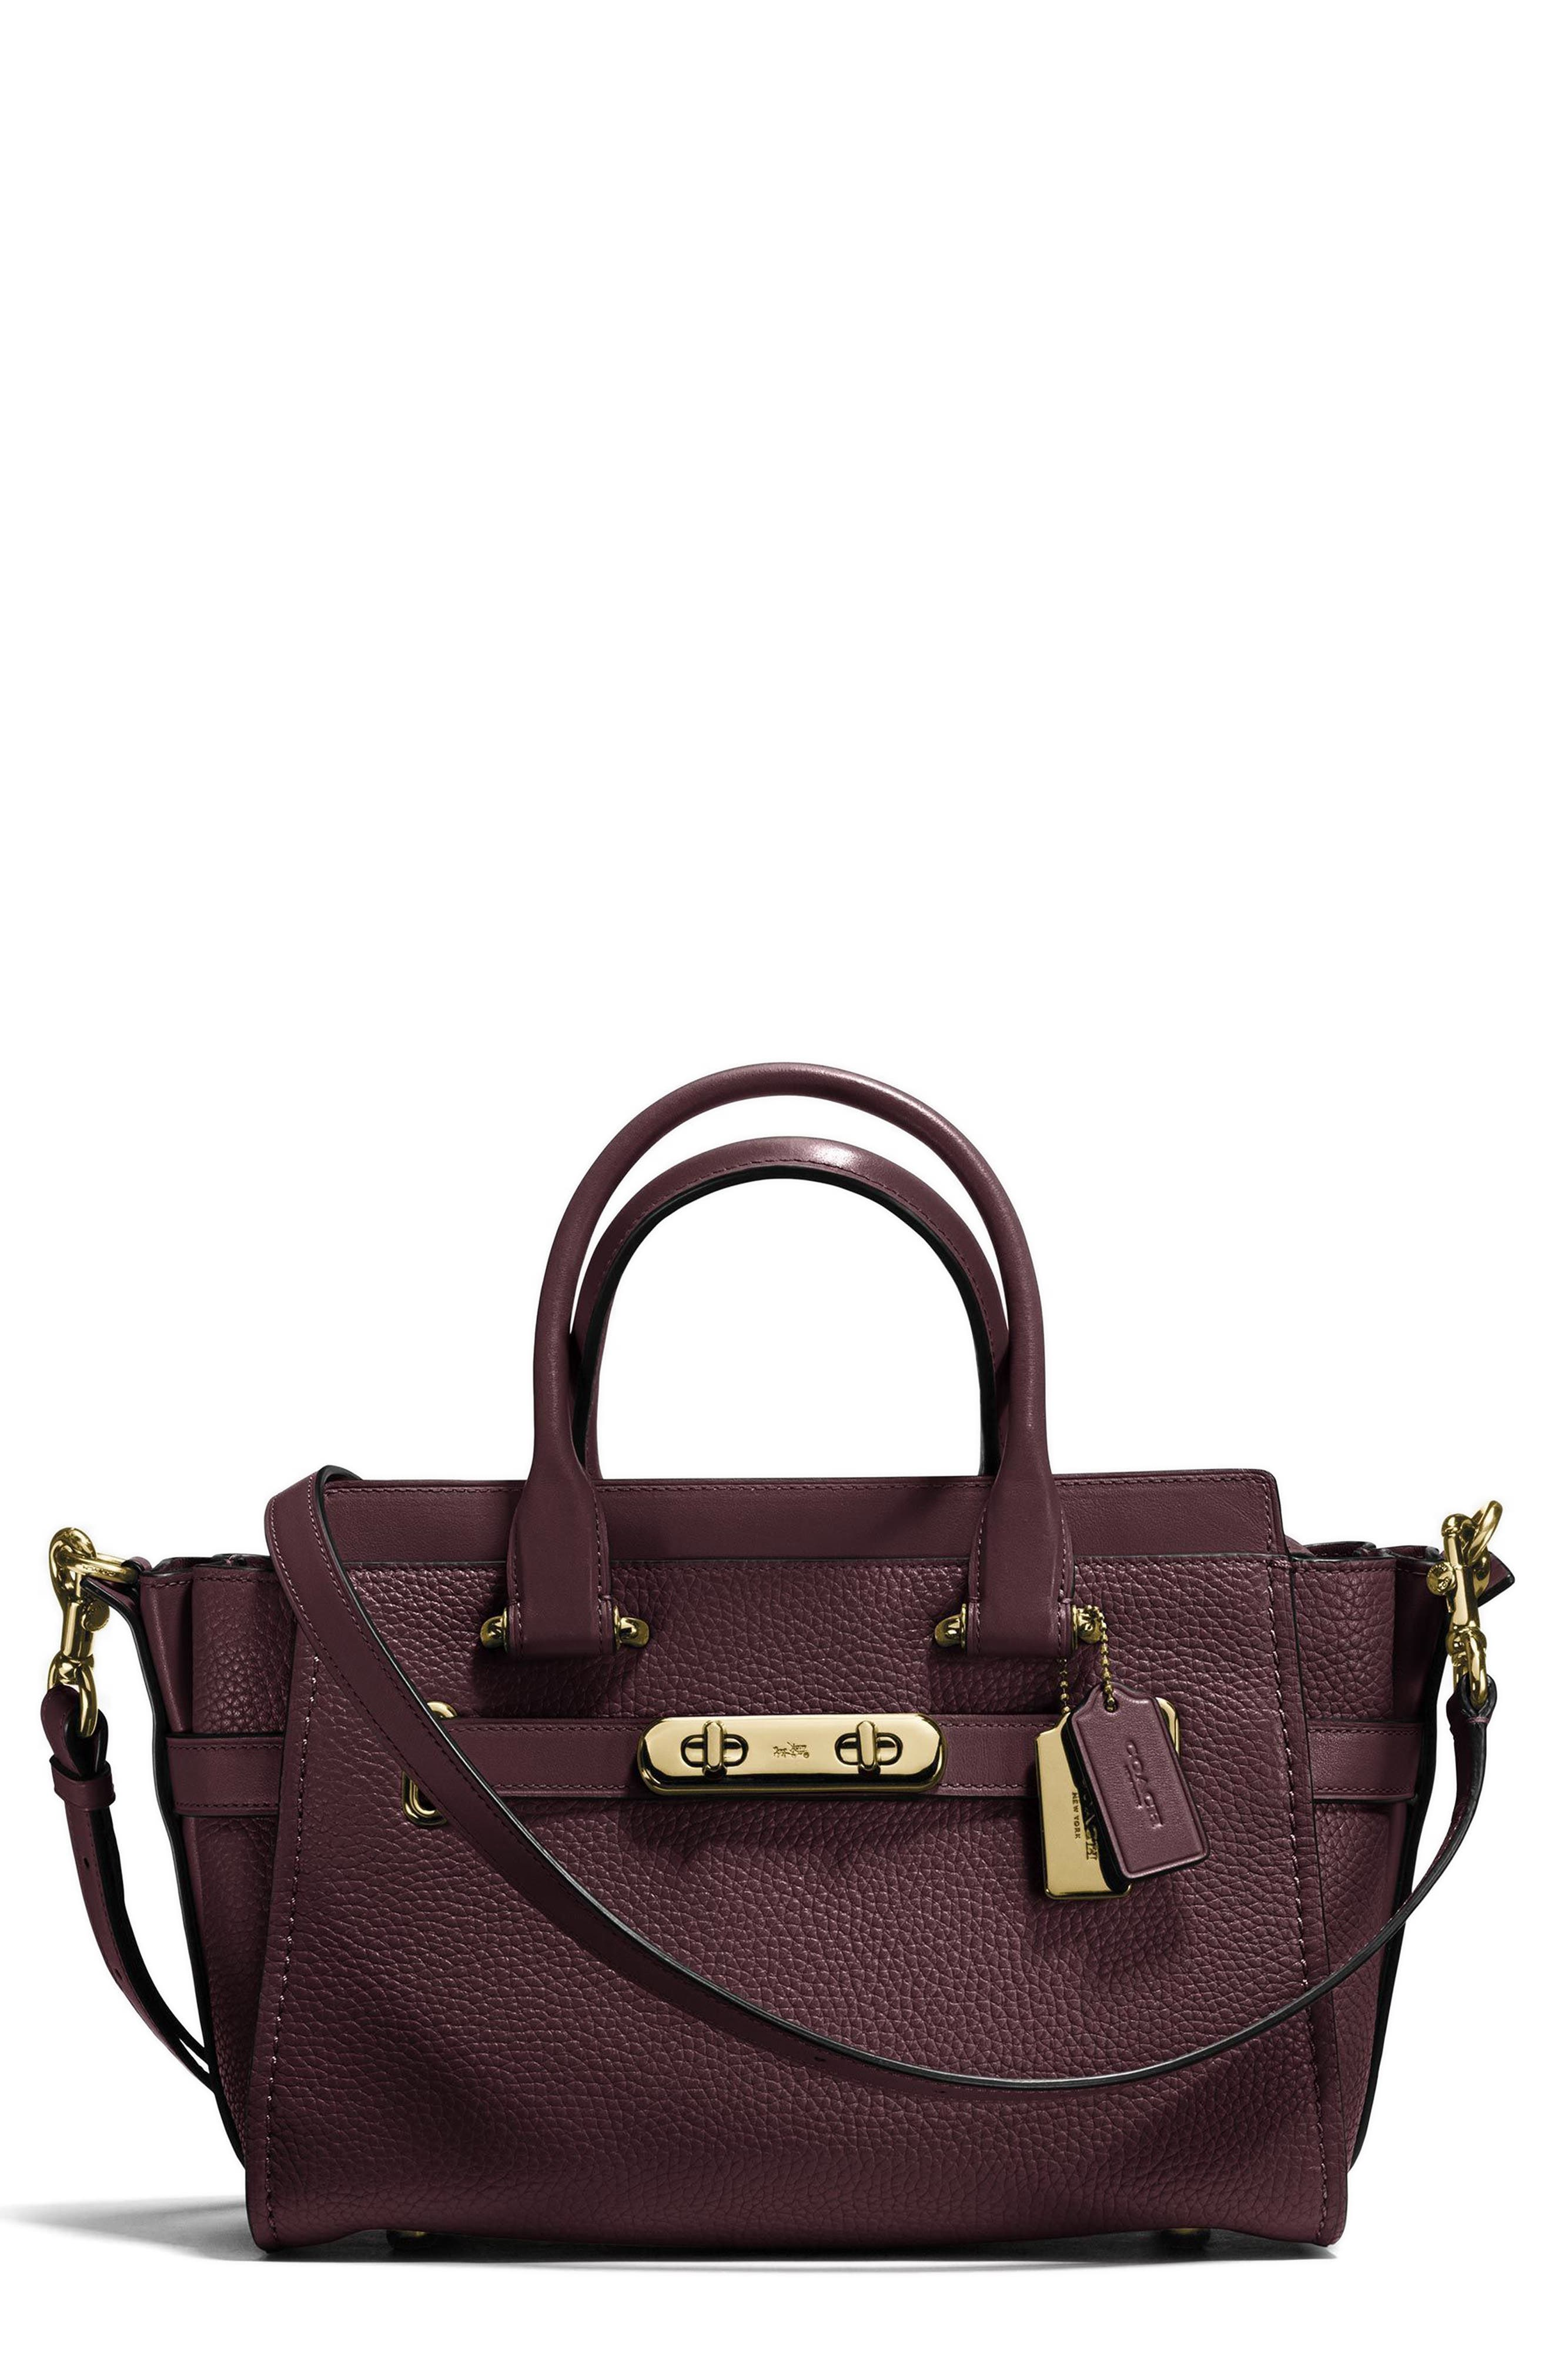 Swagger 27 Calfskin Leather Satchel,                             Main thumbnail 1, color,                             930